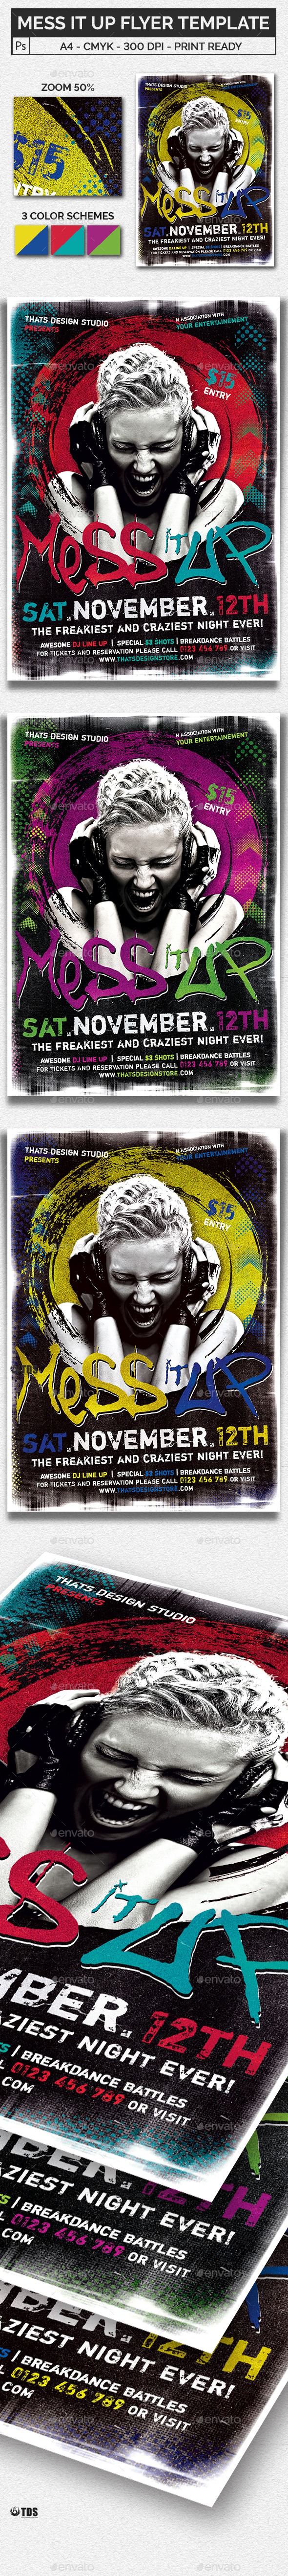 Mess it Up Flyer Template - Clubs & Parties Events